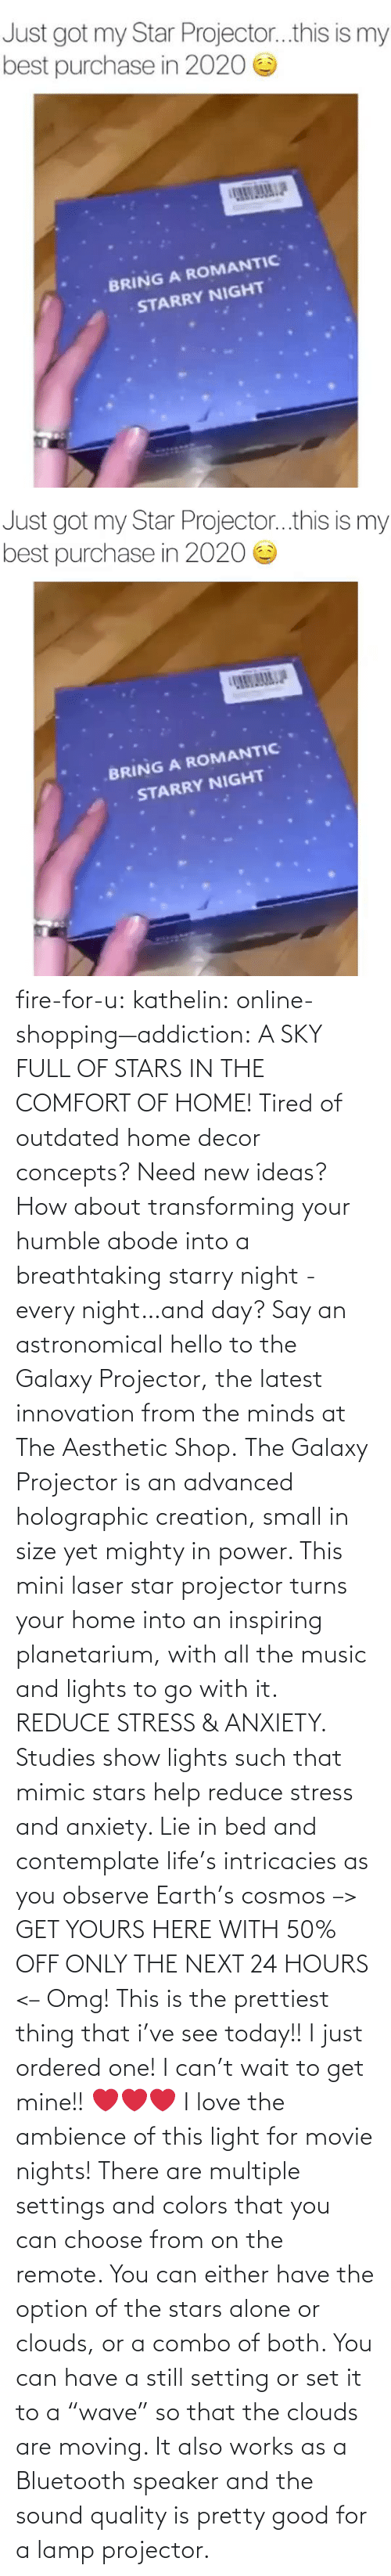 "online: fire-for-u:  kathelin: online-shopping—addiction:  A SKY FULL OF STARS IN THE COMFORT OF HOME! Tired of outdated home decor concepts? Need new ideas? How about transforming your humble abode into a breathtaking starry night - every night…and day? Say an astronomical hello to the Galaxy Projector, the latest innovation from the minds at The Aesthetic Shop. The Galaxy Projector is an advanced holographic creation, small in size yet mighty in power. This mini laser star projector turns your home into an inspiring planetarium, with all the music and lights to go with it. REDUCE STRESS & ANXIETY. Studies show lights such that mimic stars help reduce stress and anxiety. Lie in bed and contemplate life's intricacies as you observe Earth's cosmos  –> GET YOURS HERE WITH 50% OFF ONLY THE NEXT 24 HOURS <–   Omg! This is the prettiest thing that i've see today!! I just ordered one! I can't wait to get mine!! ❤️️❤️️❤️️  I love the ambience of this light for movie nights! There are multiple settings and colors that you can choose from on the remote. You can either have the option of the stars alone or clouds, or a combo of both. You can have a still setting or set it to a ""wave"" so that the clouds are moving. It also works as a Bluetooth speaker and the sound quality is pretty good for a lamp projector."